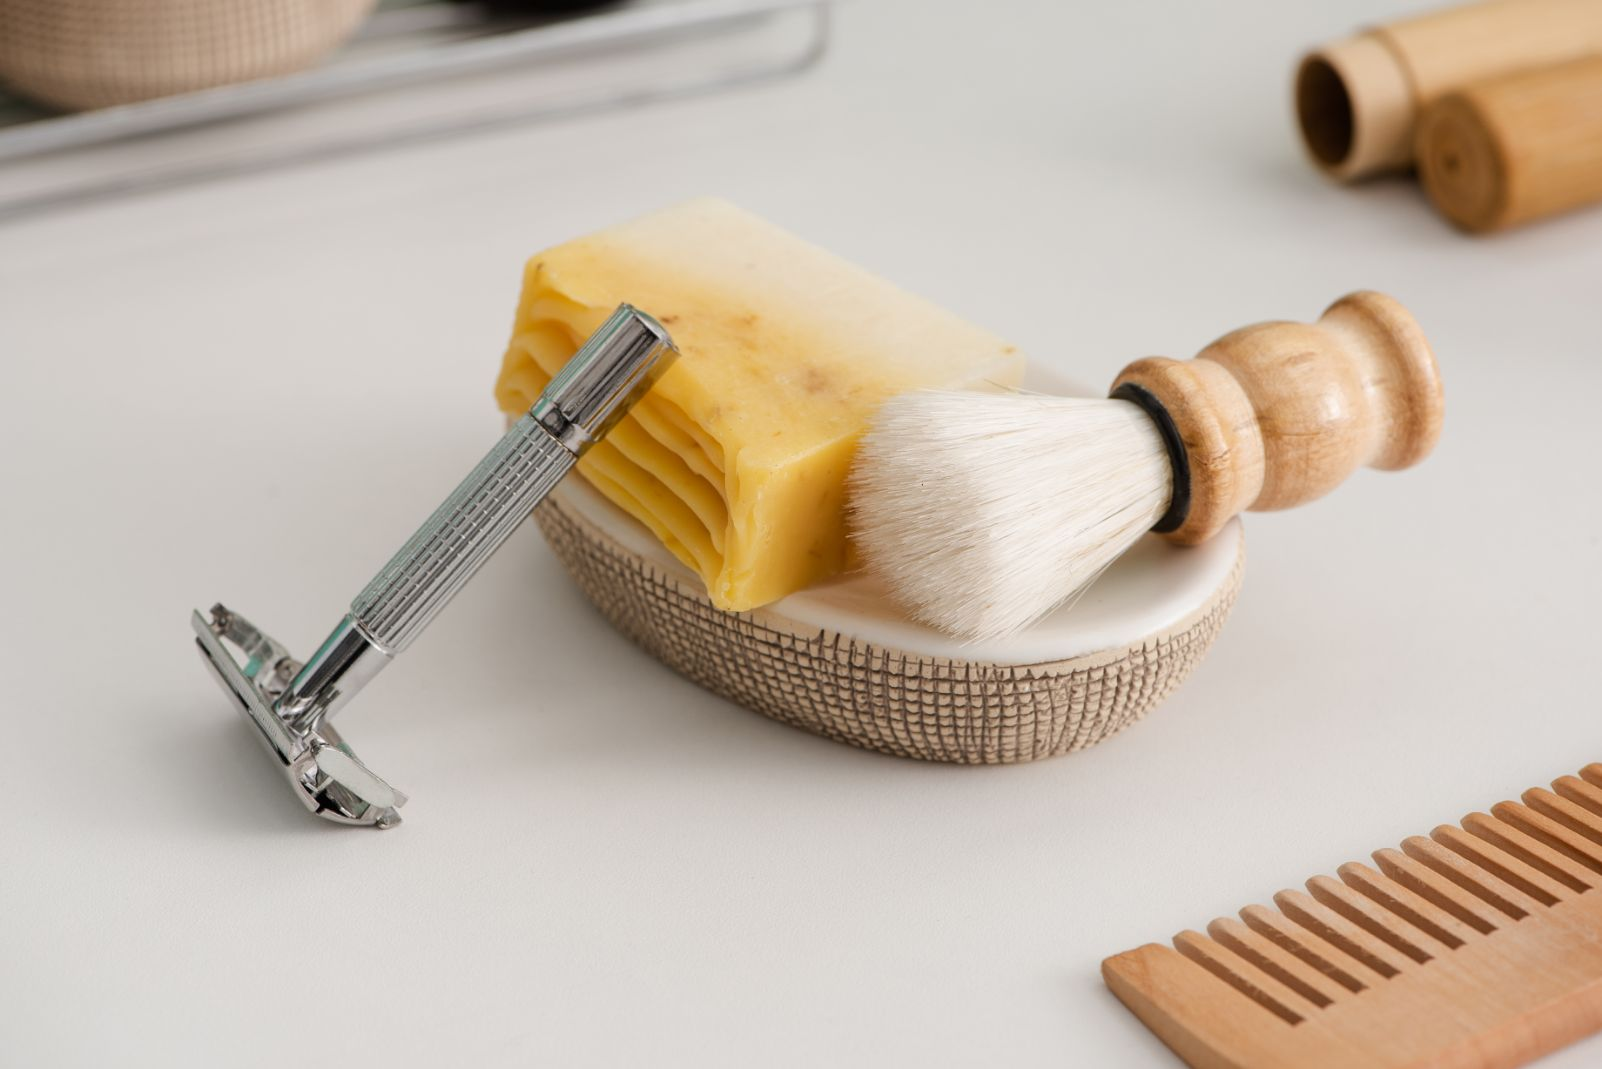 close up view of dish with soap shaving brush and WNEVS